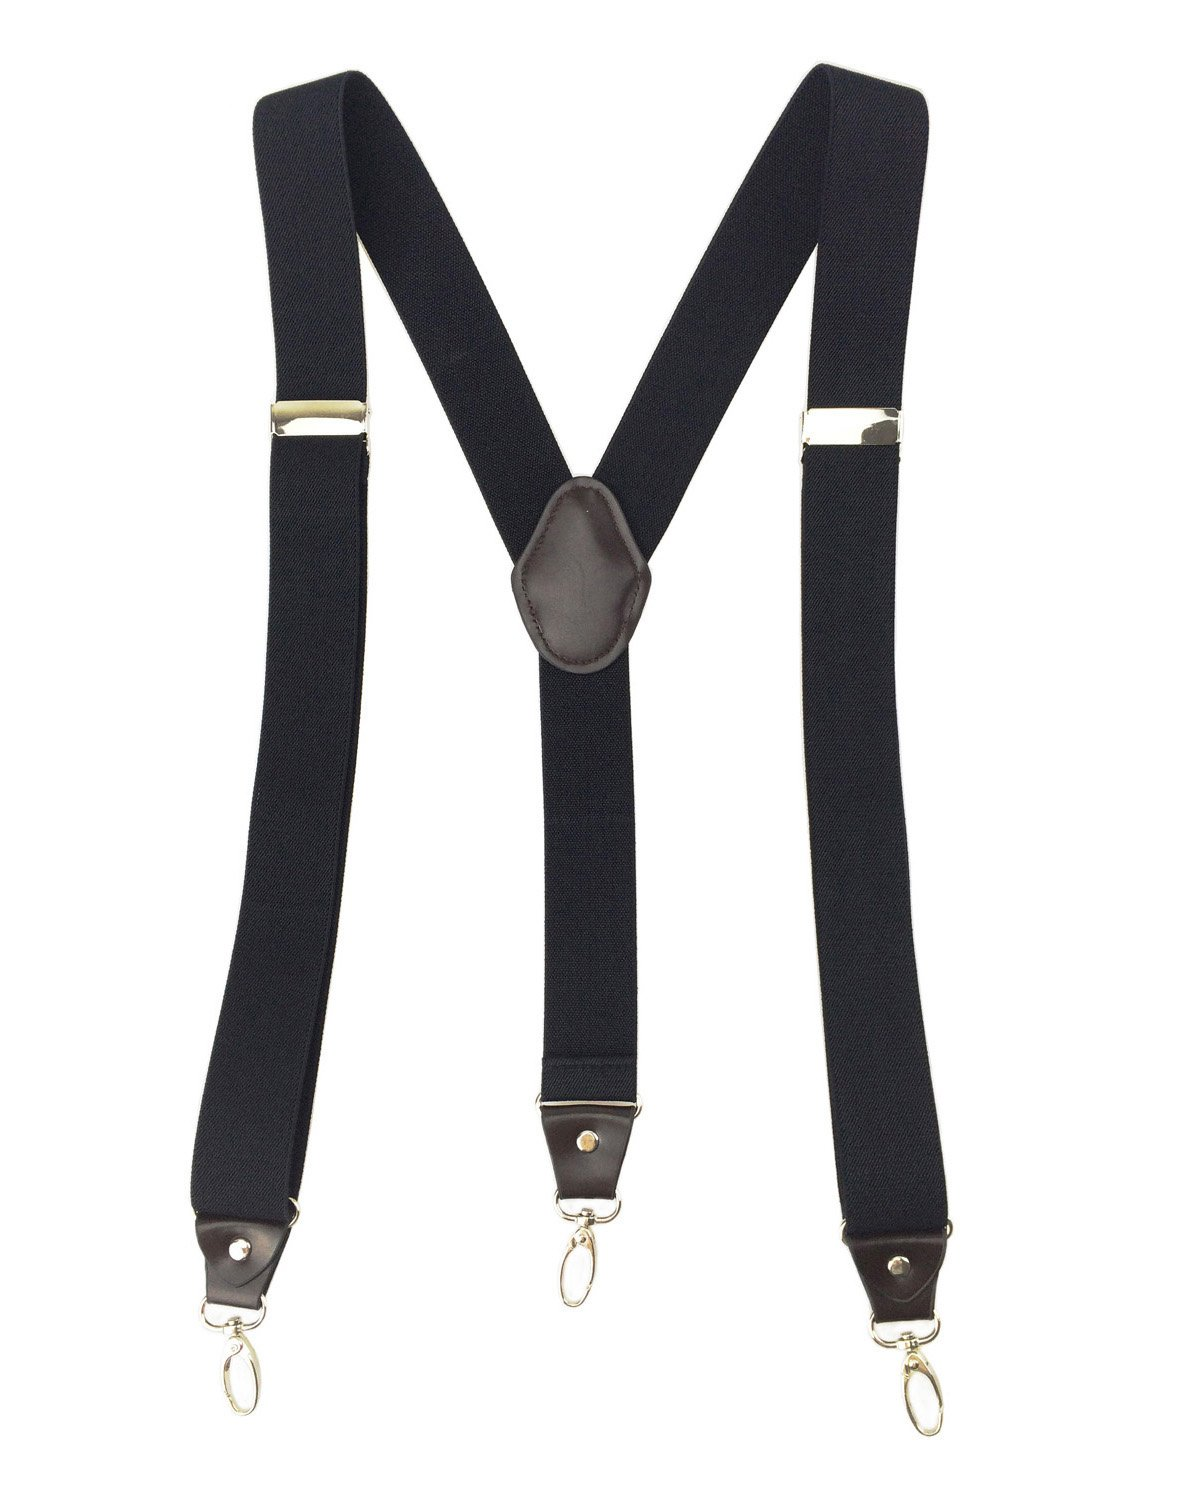 Romanlin Mens Suspenders for Work 3 Swivel Hook Clips Y-back Leather Crosspatch for Groomsmen Black 3.5cm Width